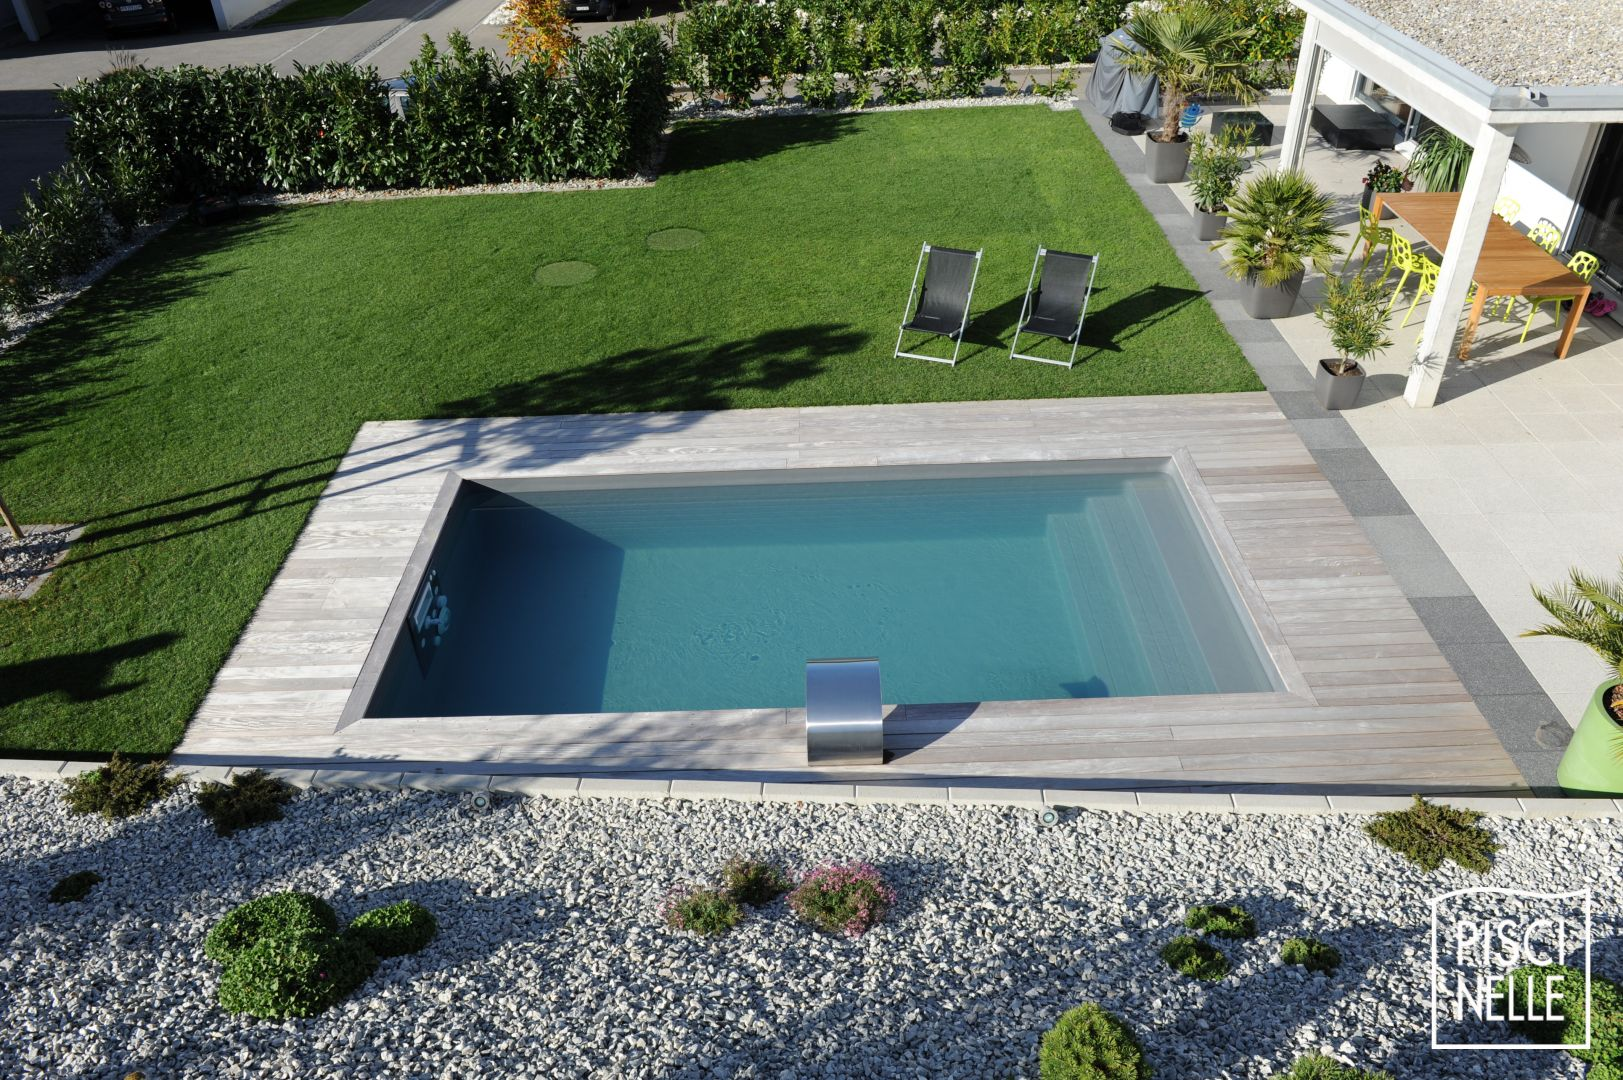 reportage photo piscine rectangulaire en suisse. Black Bedroom Furniture Sets. Home Design Ideas